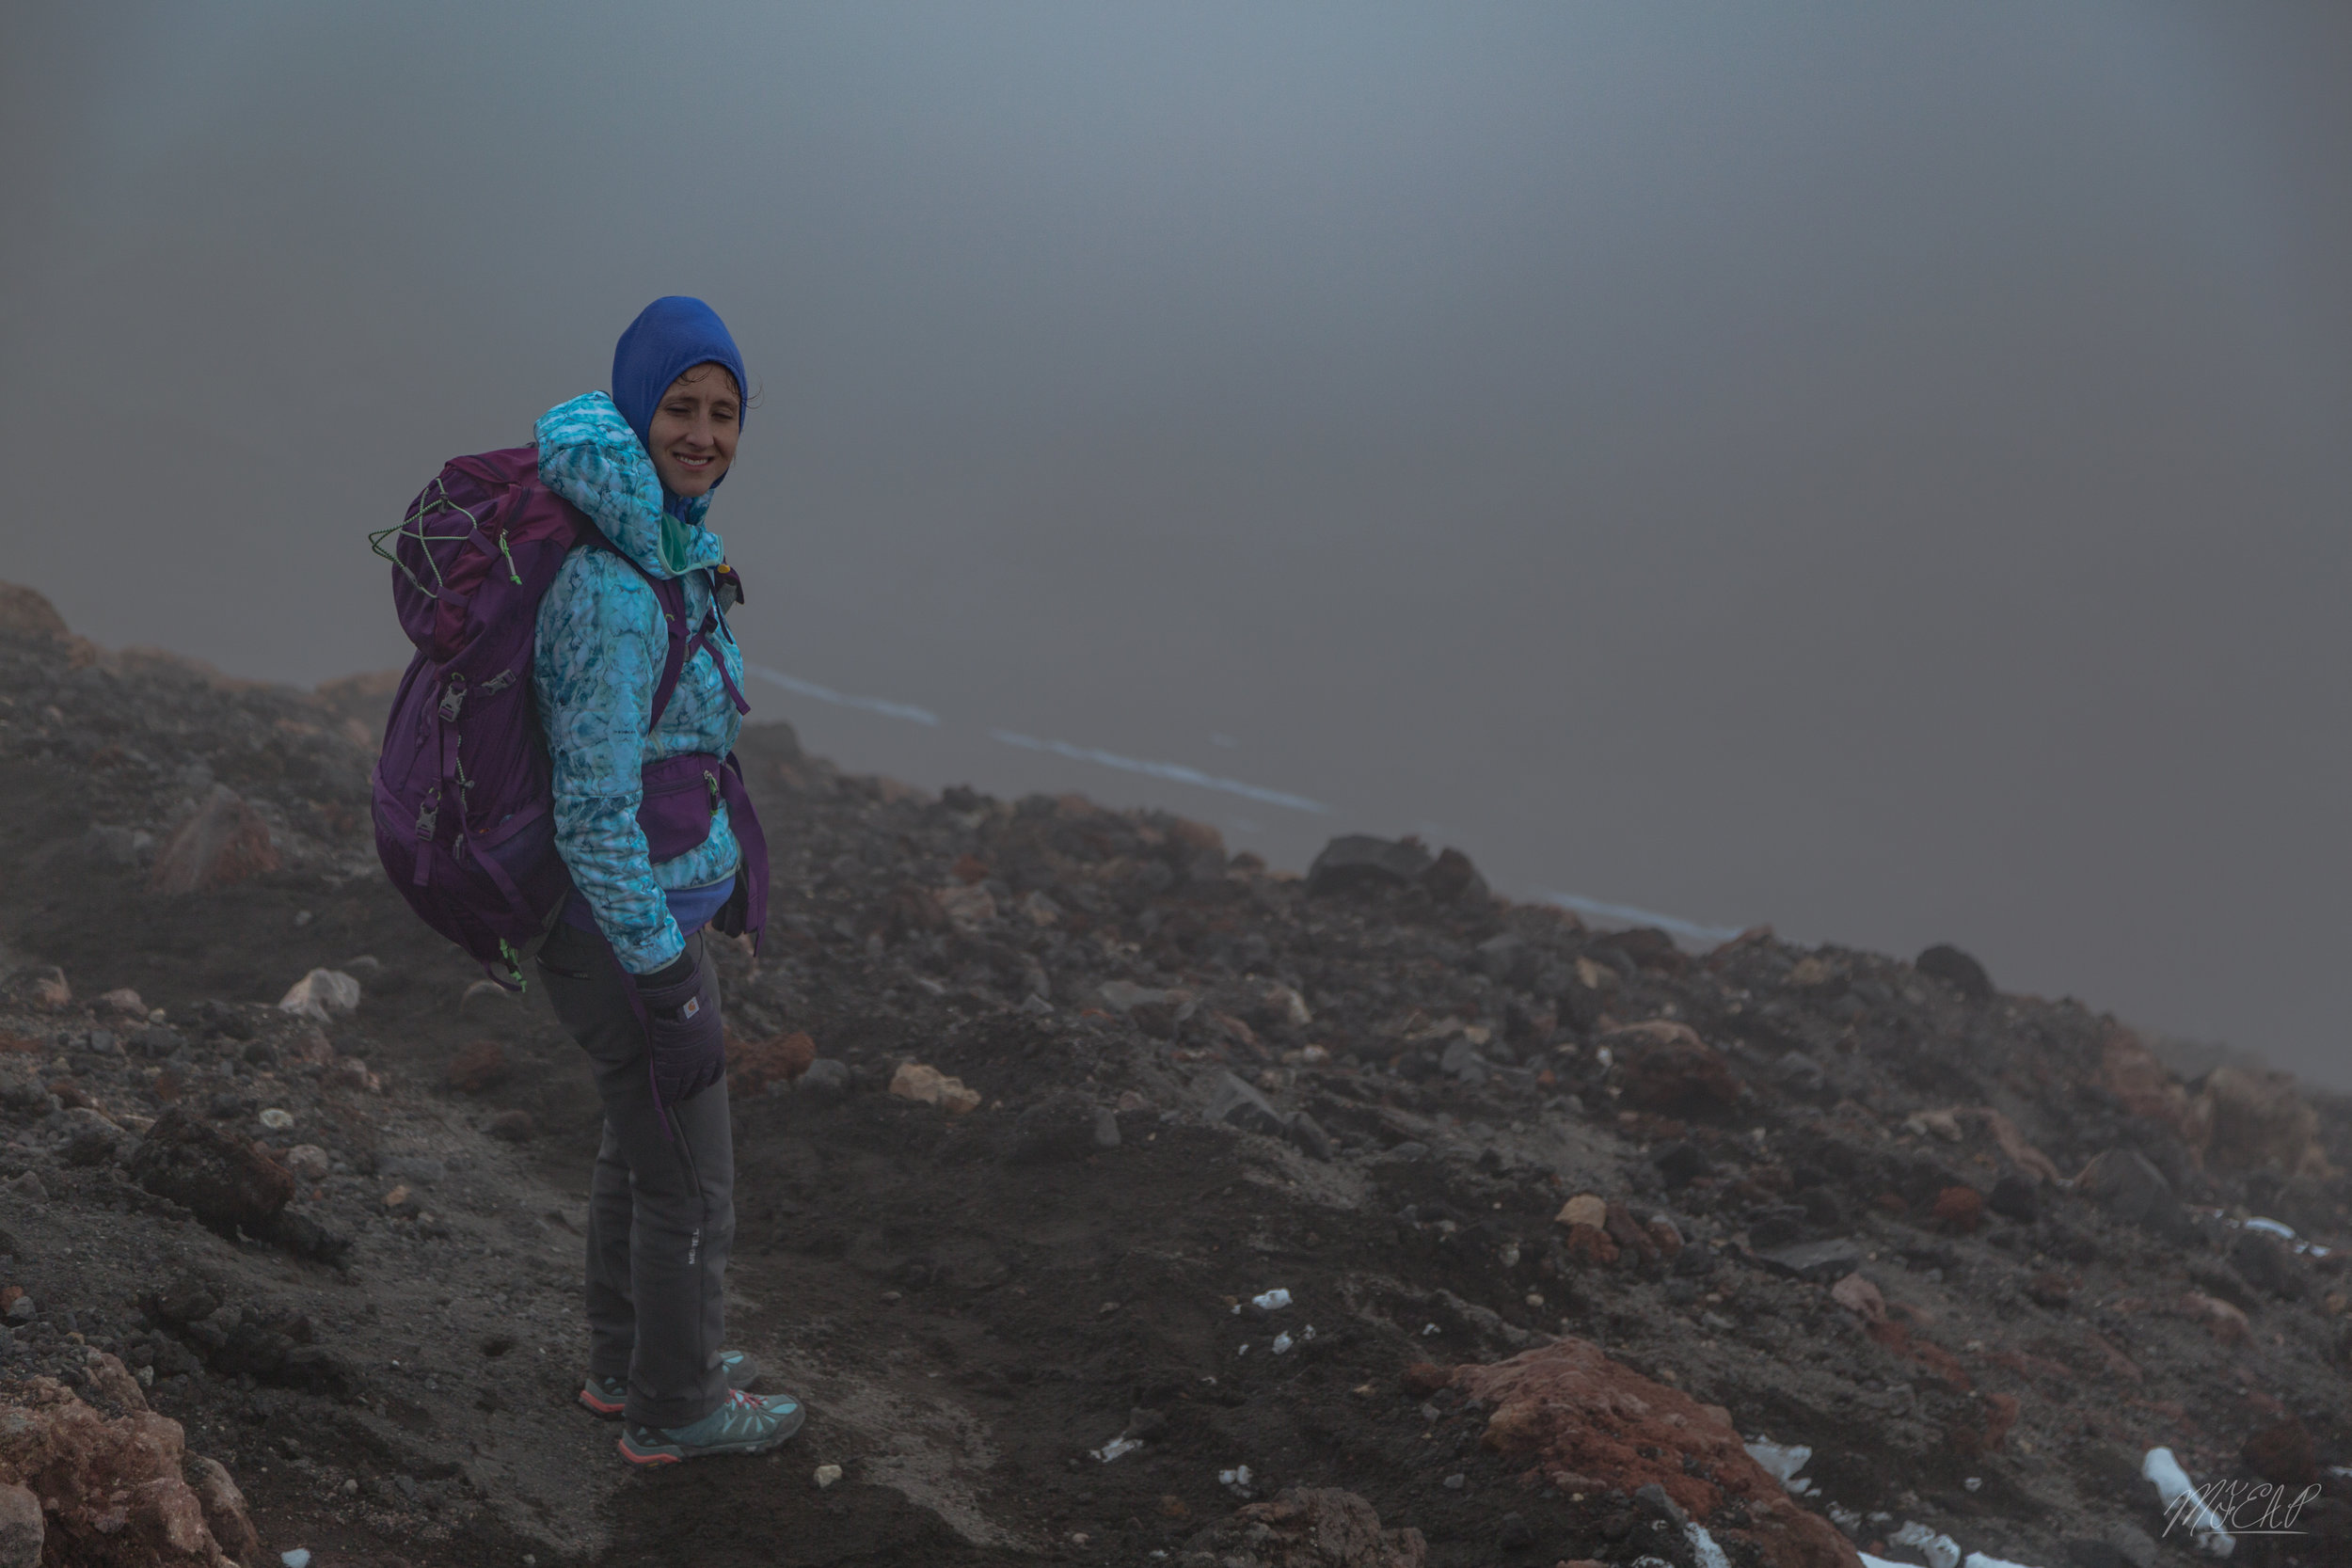 clouds rolled in just as we reached the summit